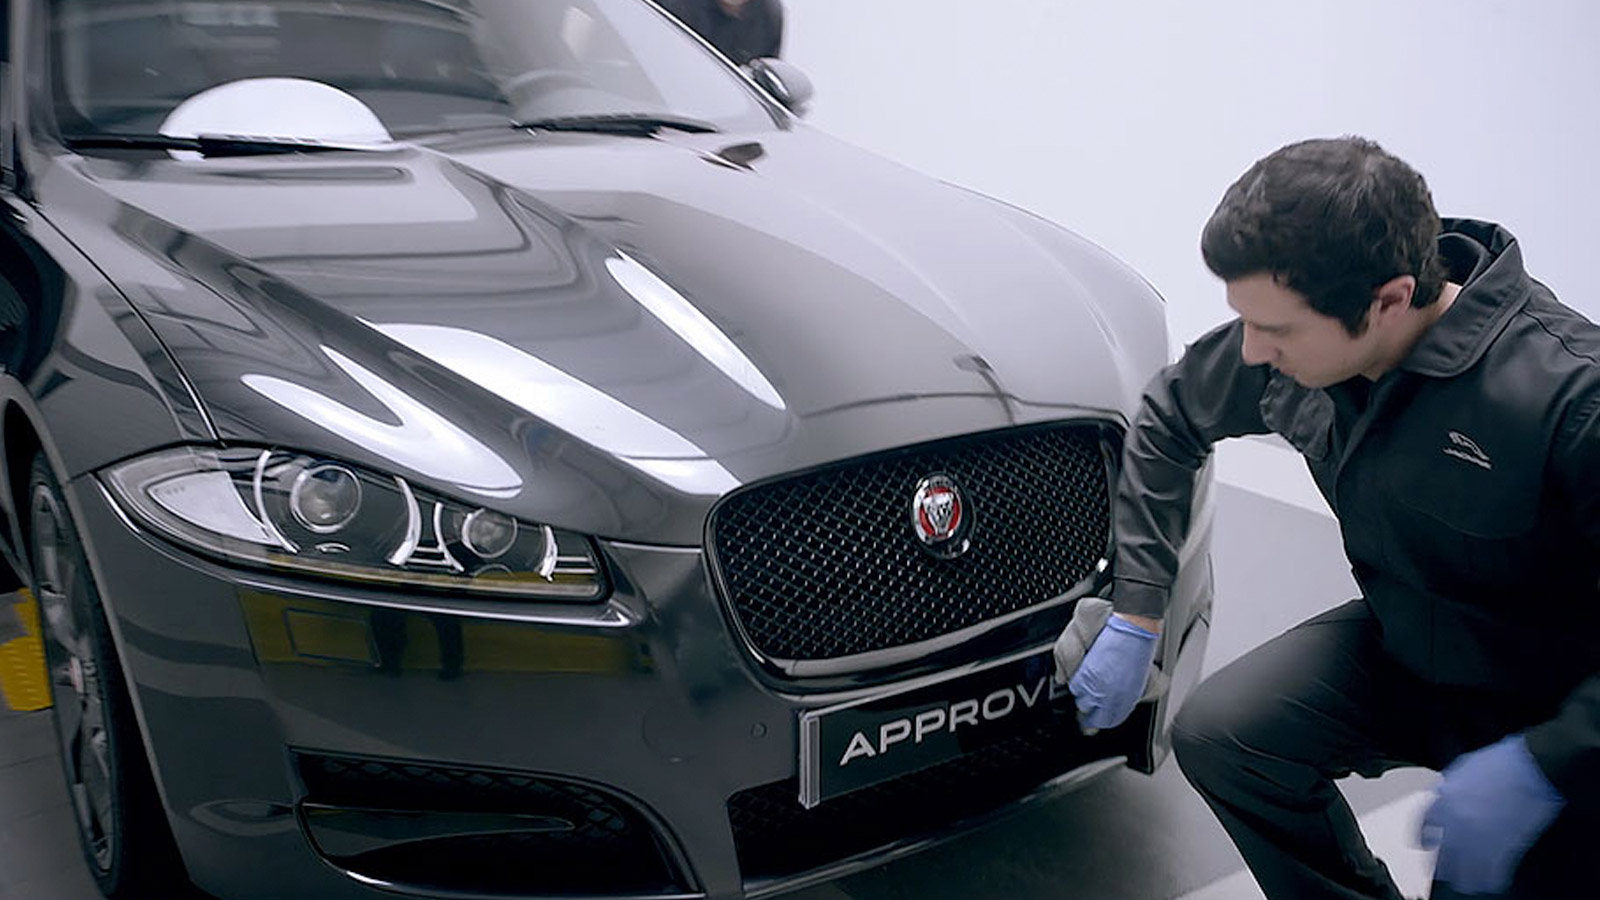 A Jaguar mechanic wiping the front of an approved used Jaguar vehicle.